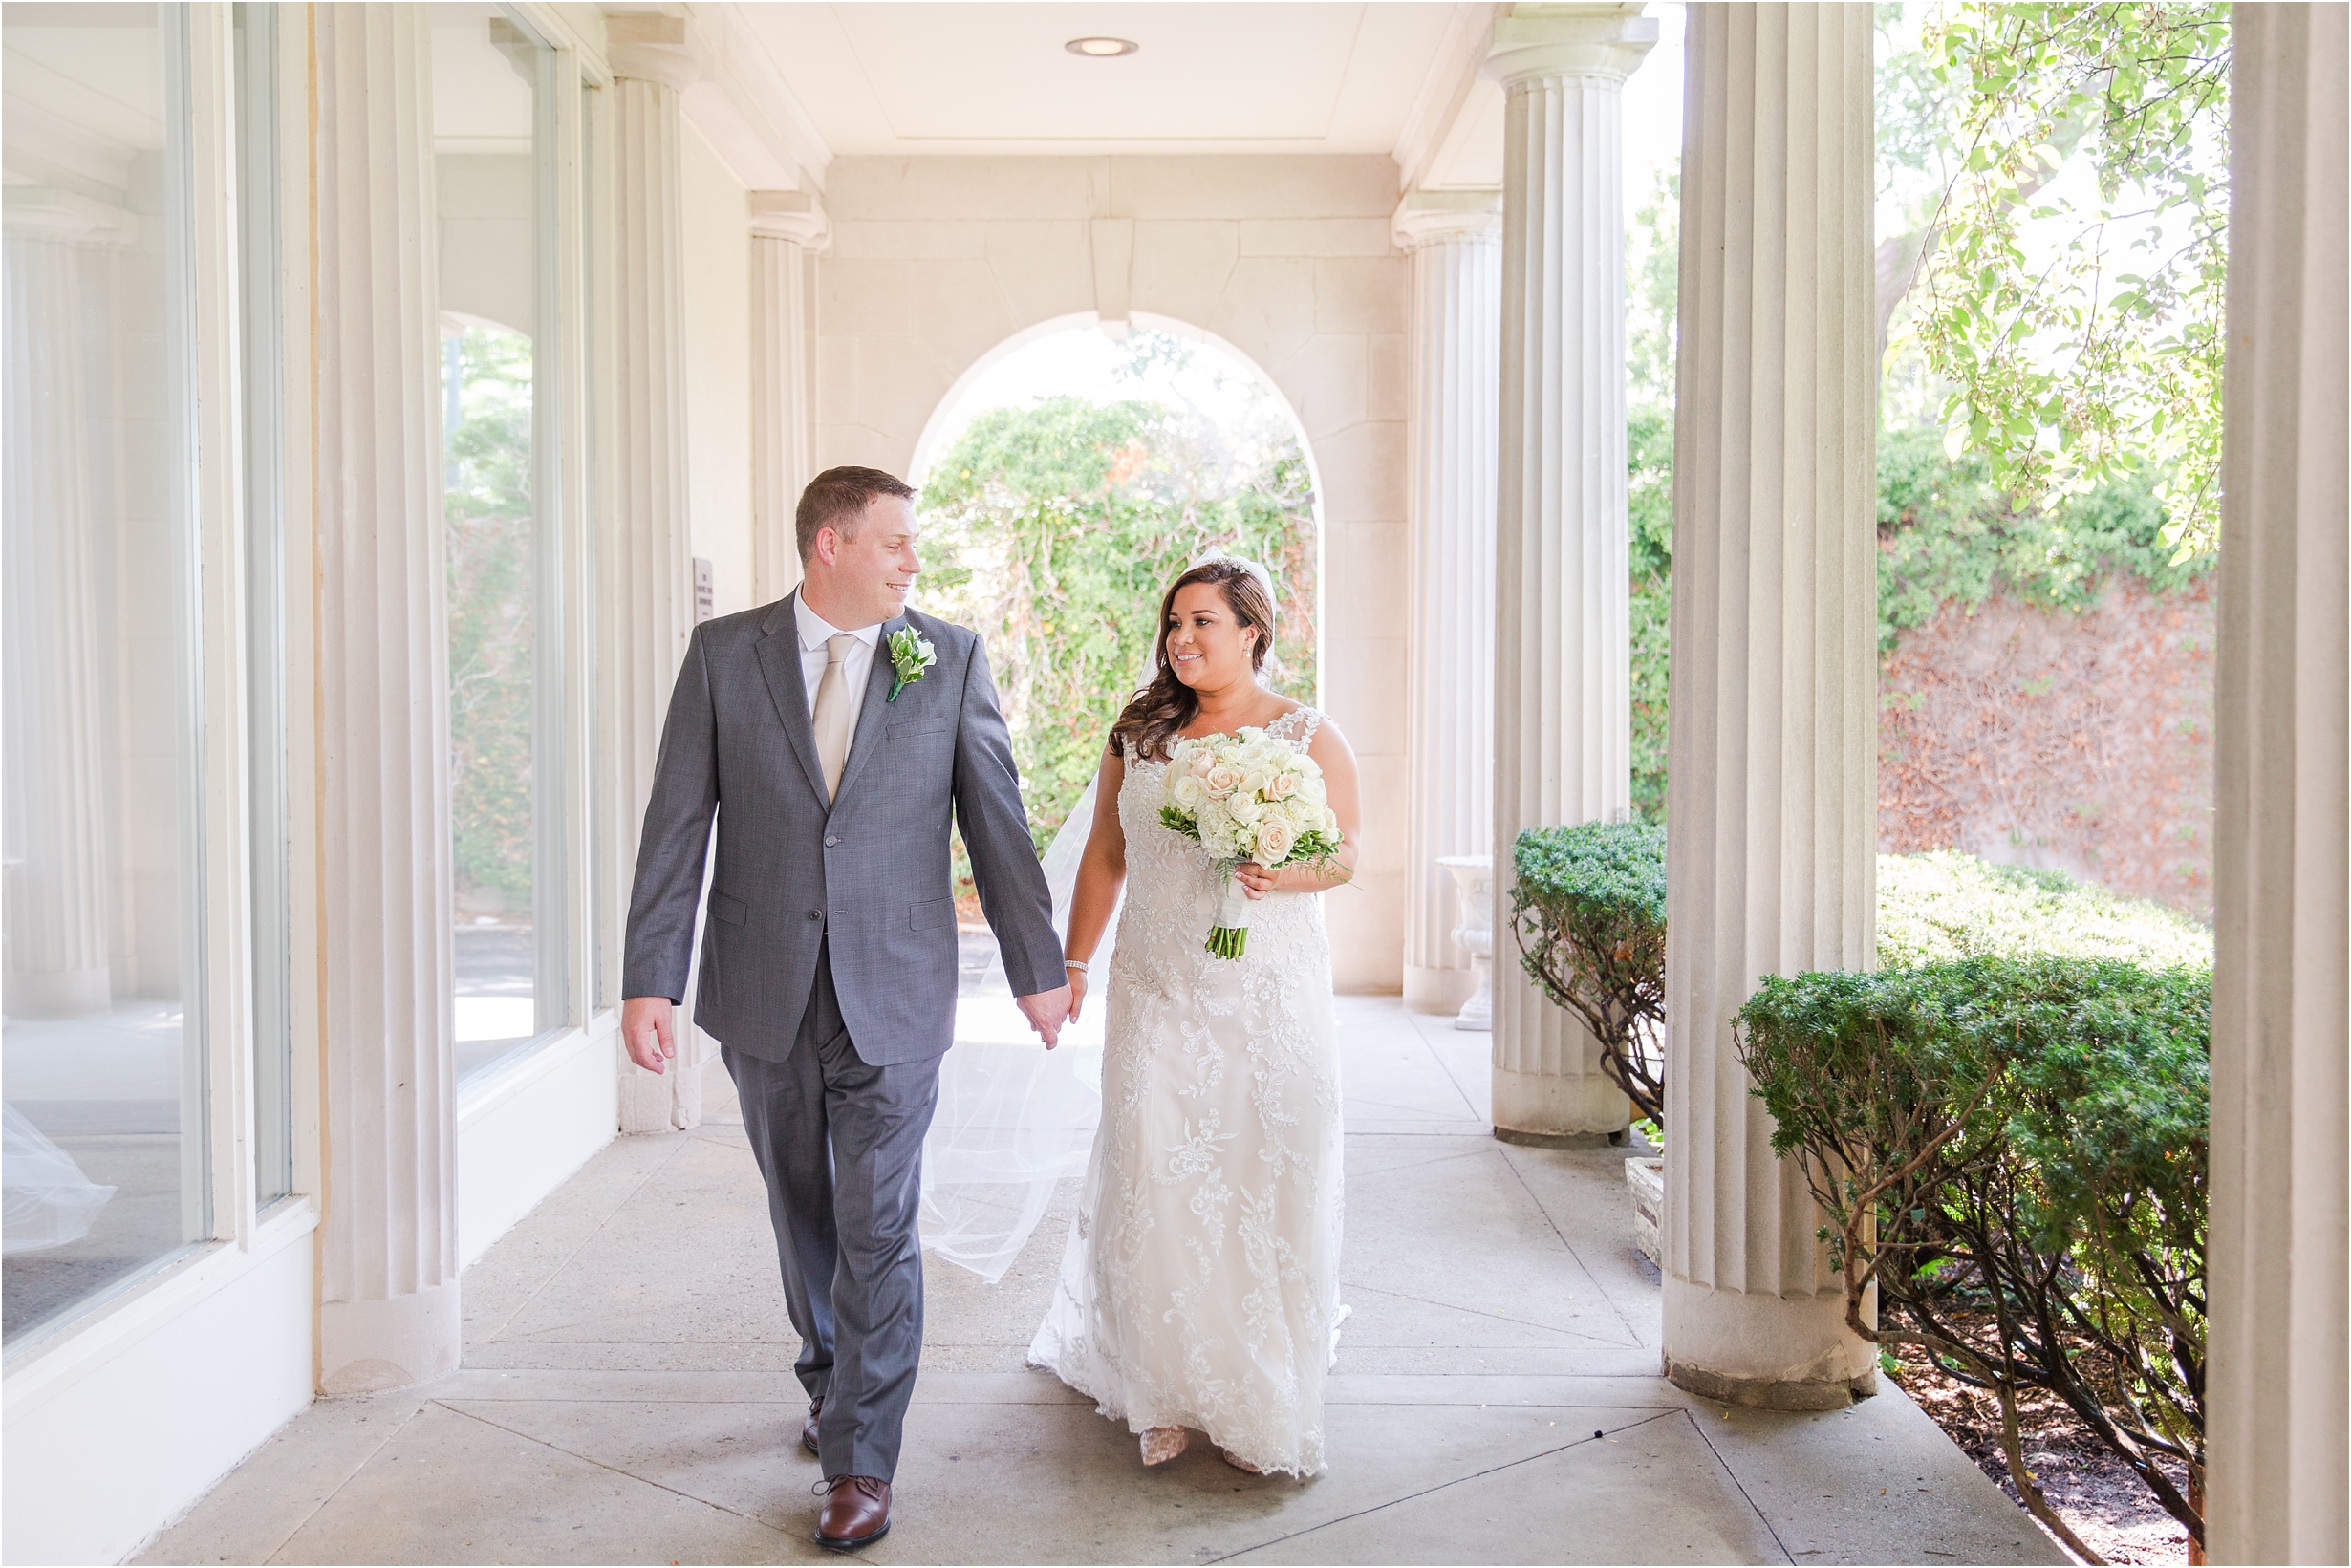 romantic-timeless-candid-wedding-photos-at-the-war-memorial-in-grosse-pointe-mi-by-courtney-carolyn-photography_0004.jpg